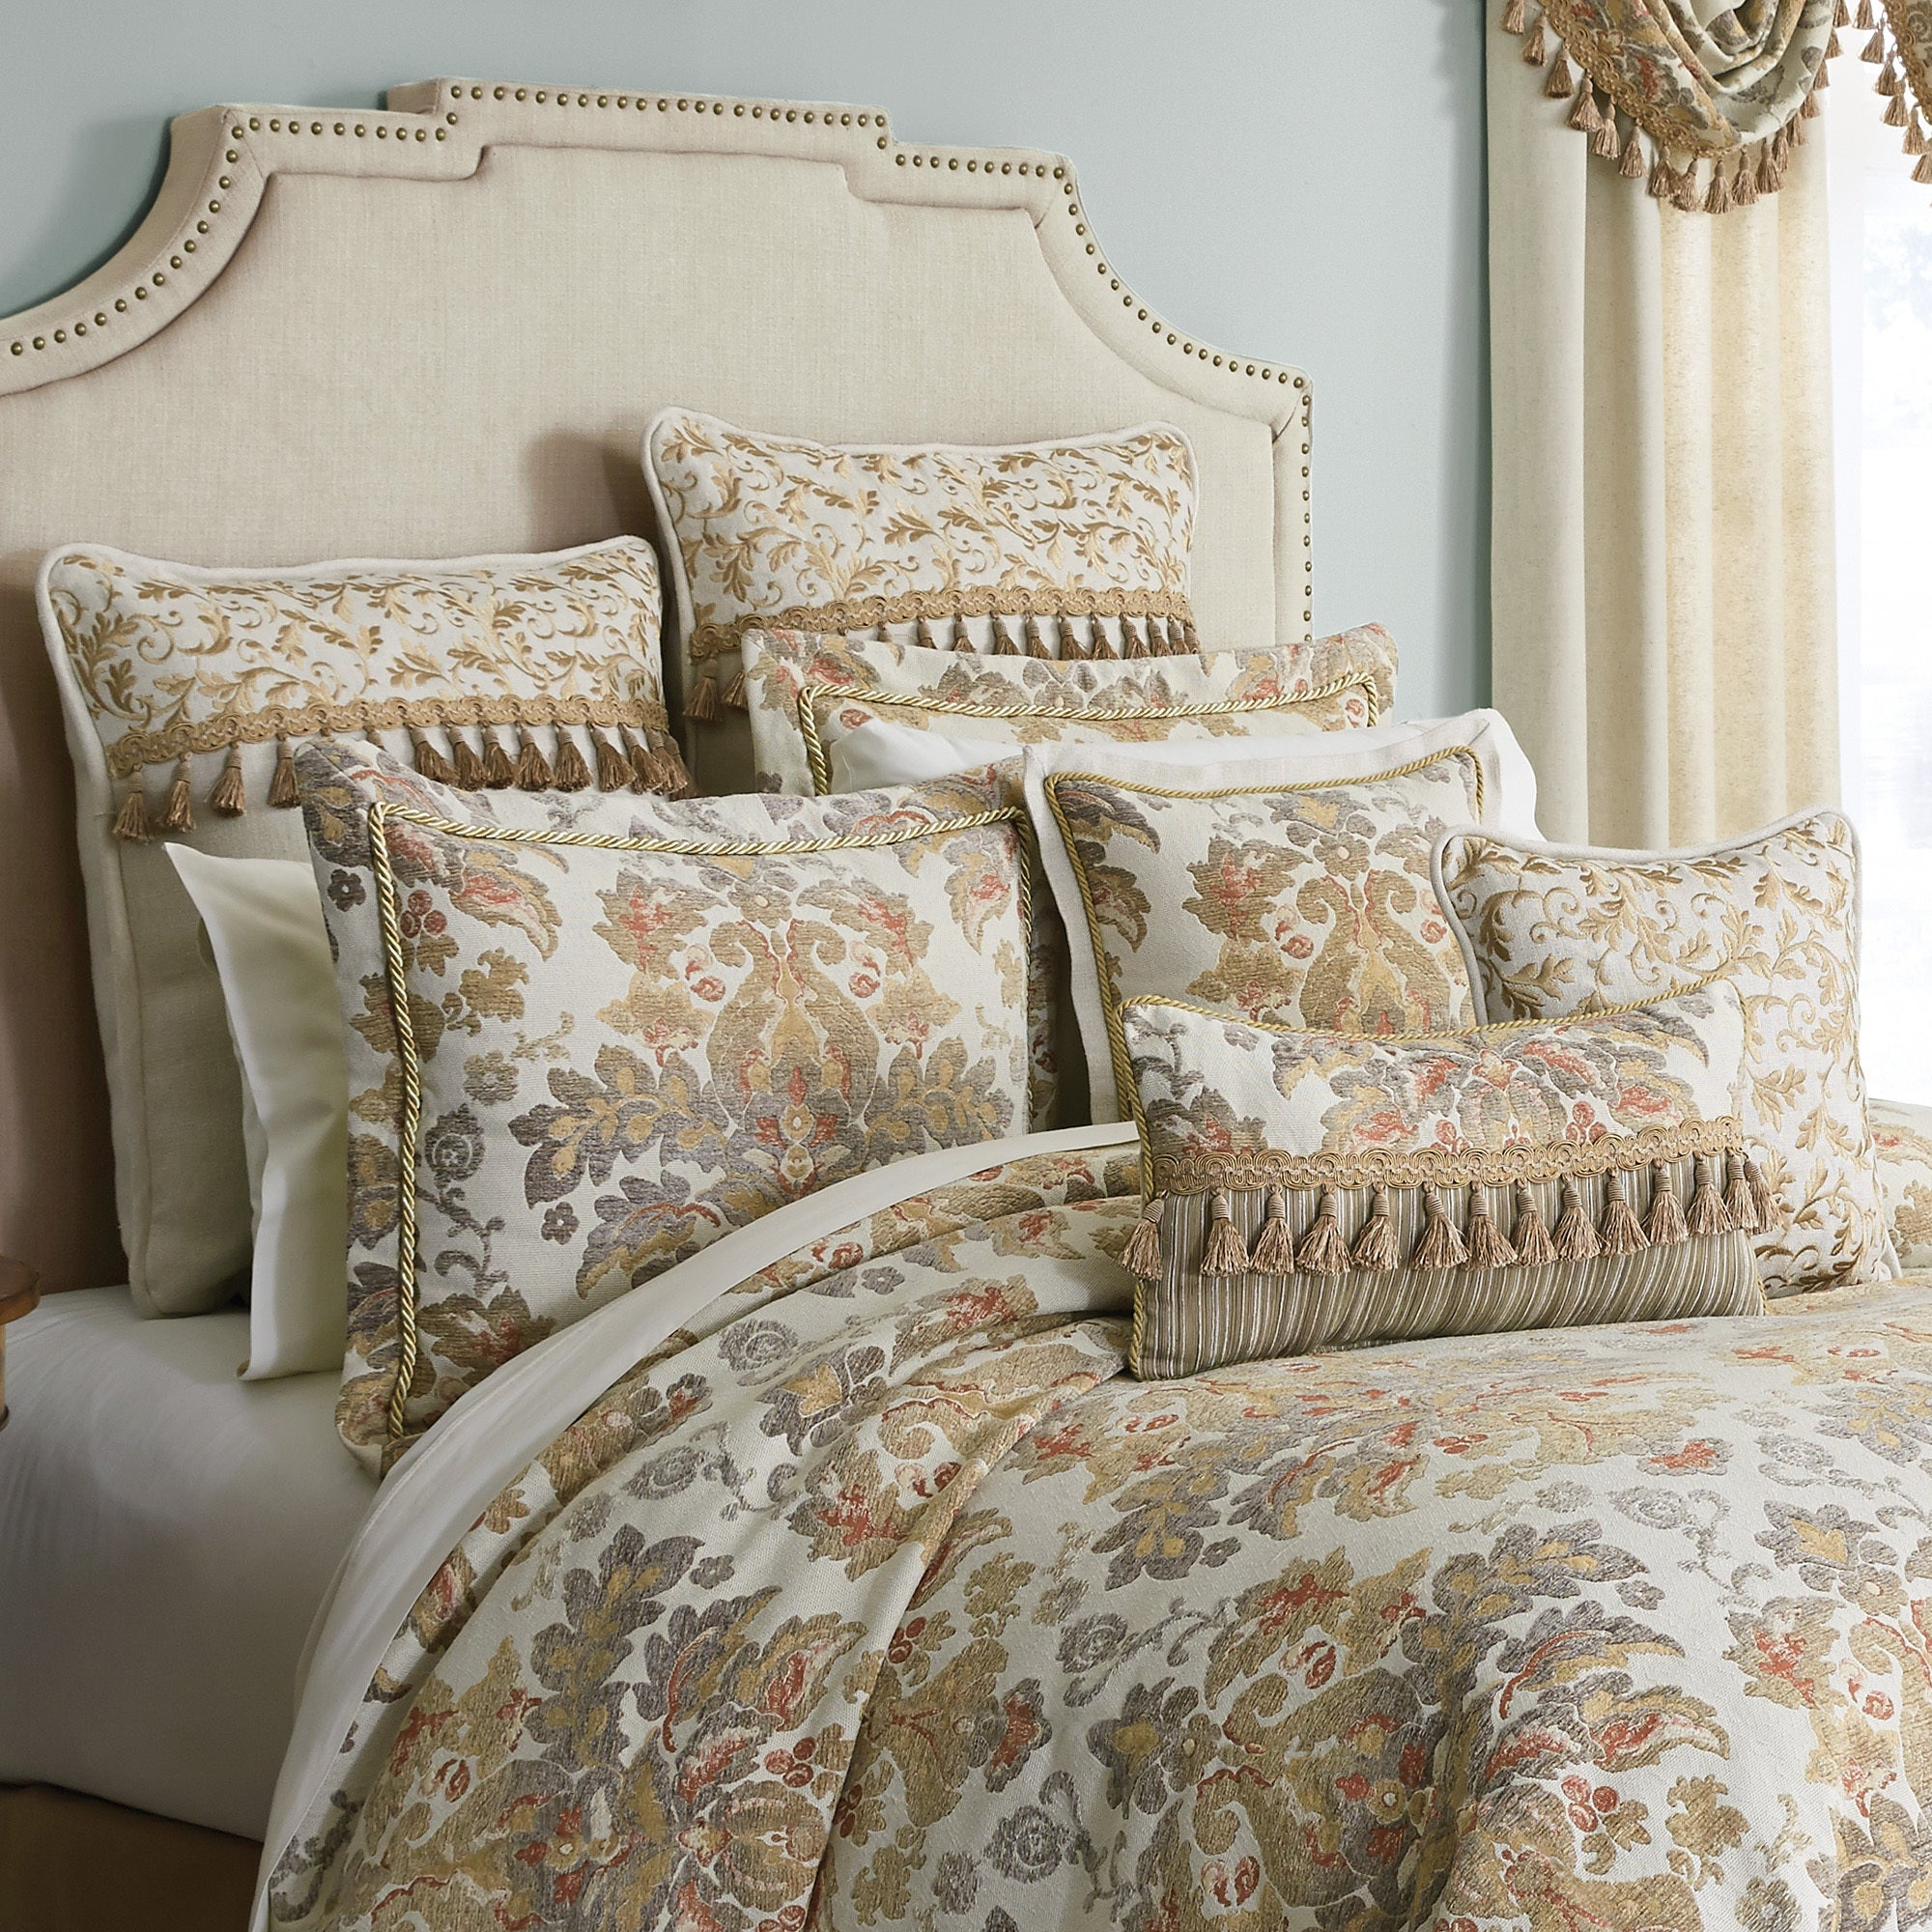 decorating household croscill sets of southwest decor home with veracruz touch class bedding regard plan in inspirations to comforter